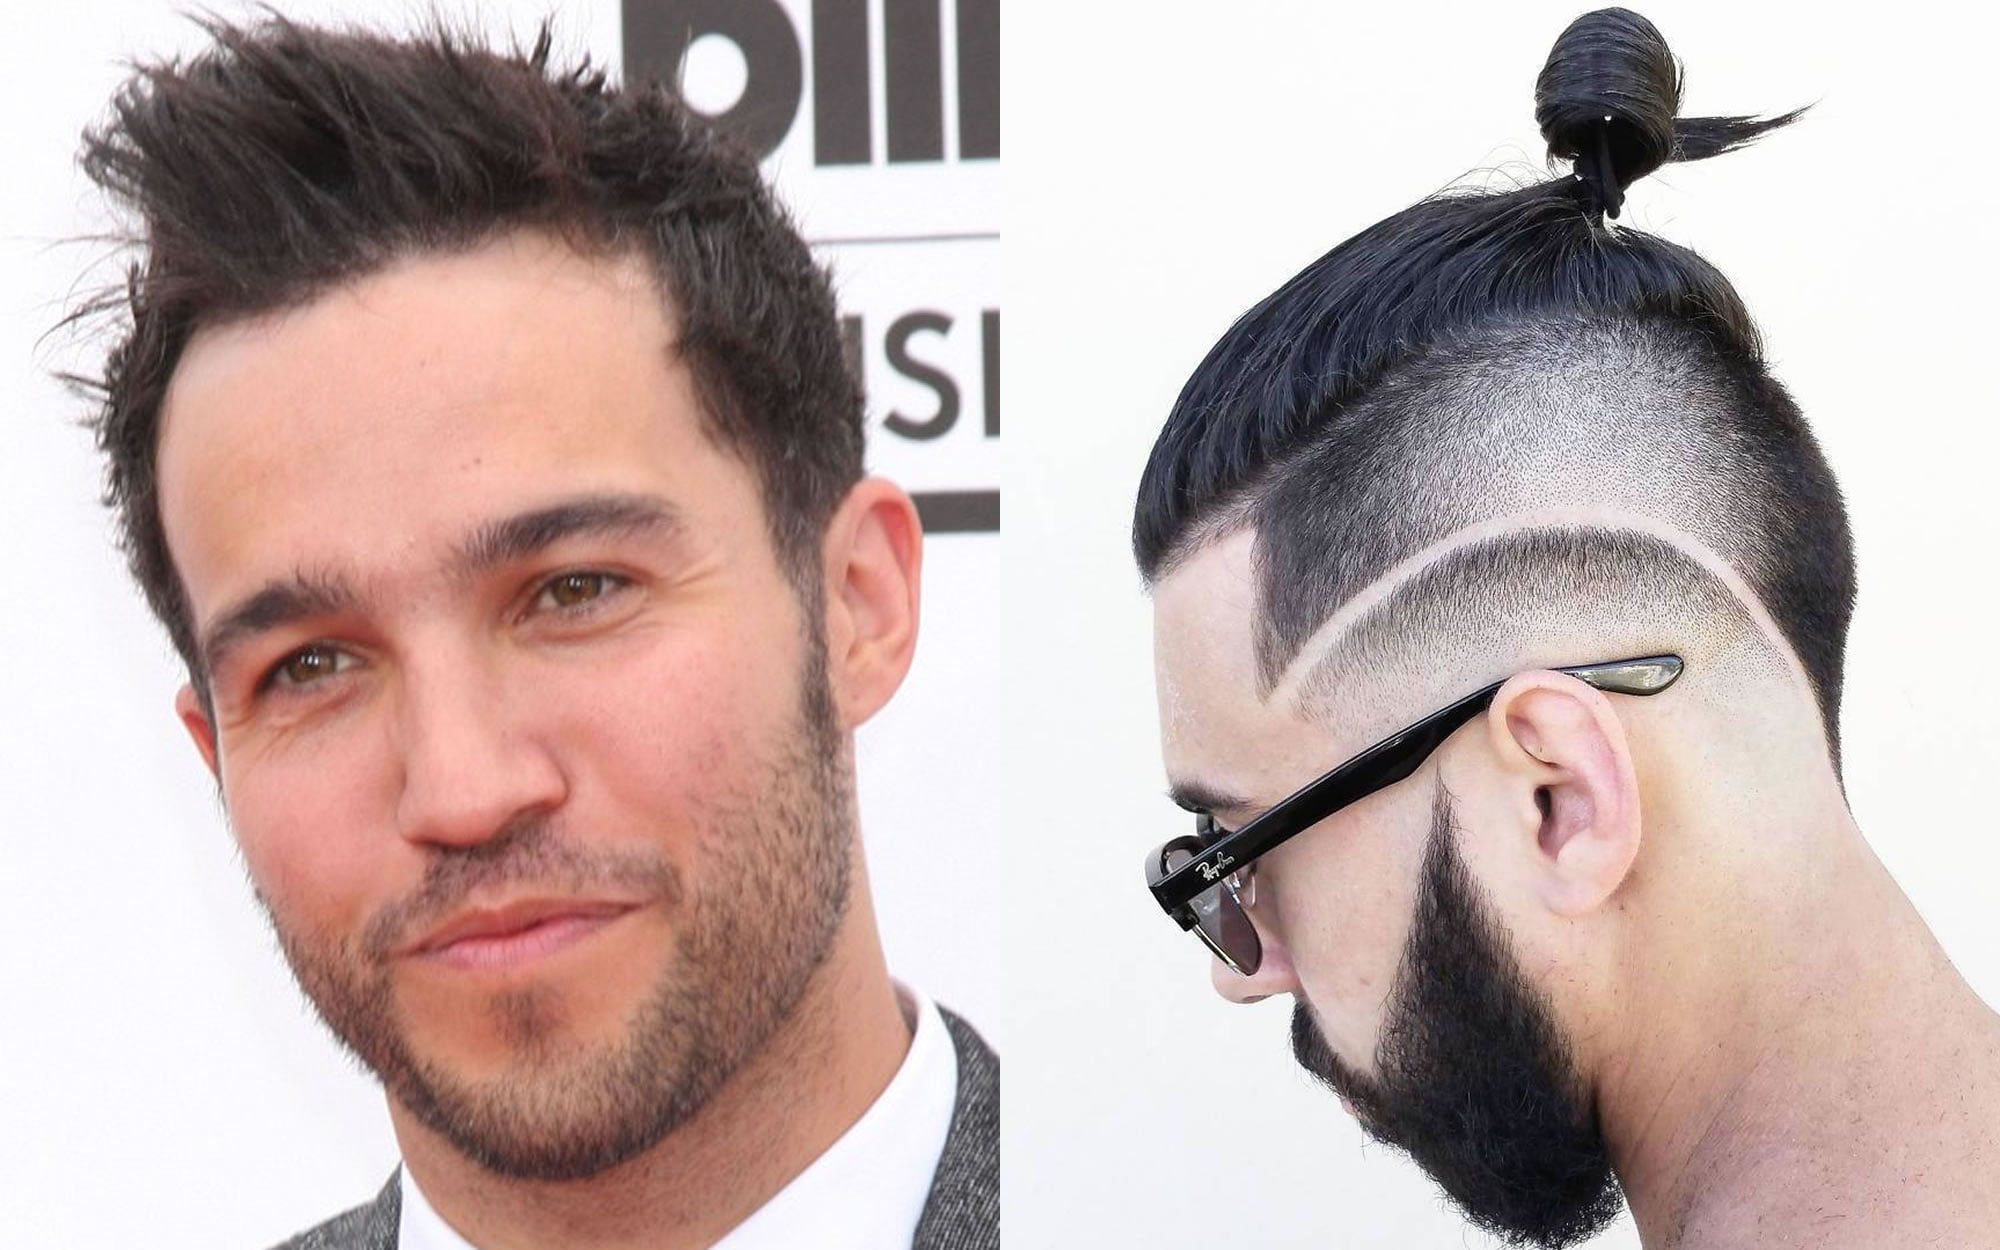 Haircuts for Thick Hair for Men 2018 - Trendy Hair Color Ideas